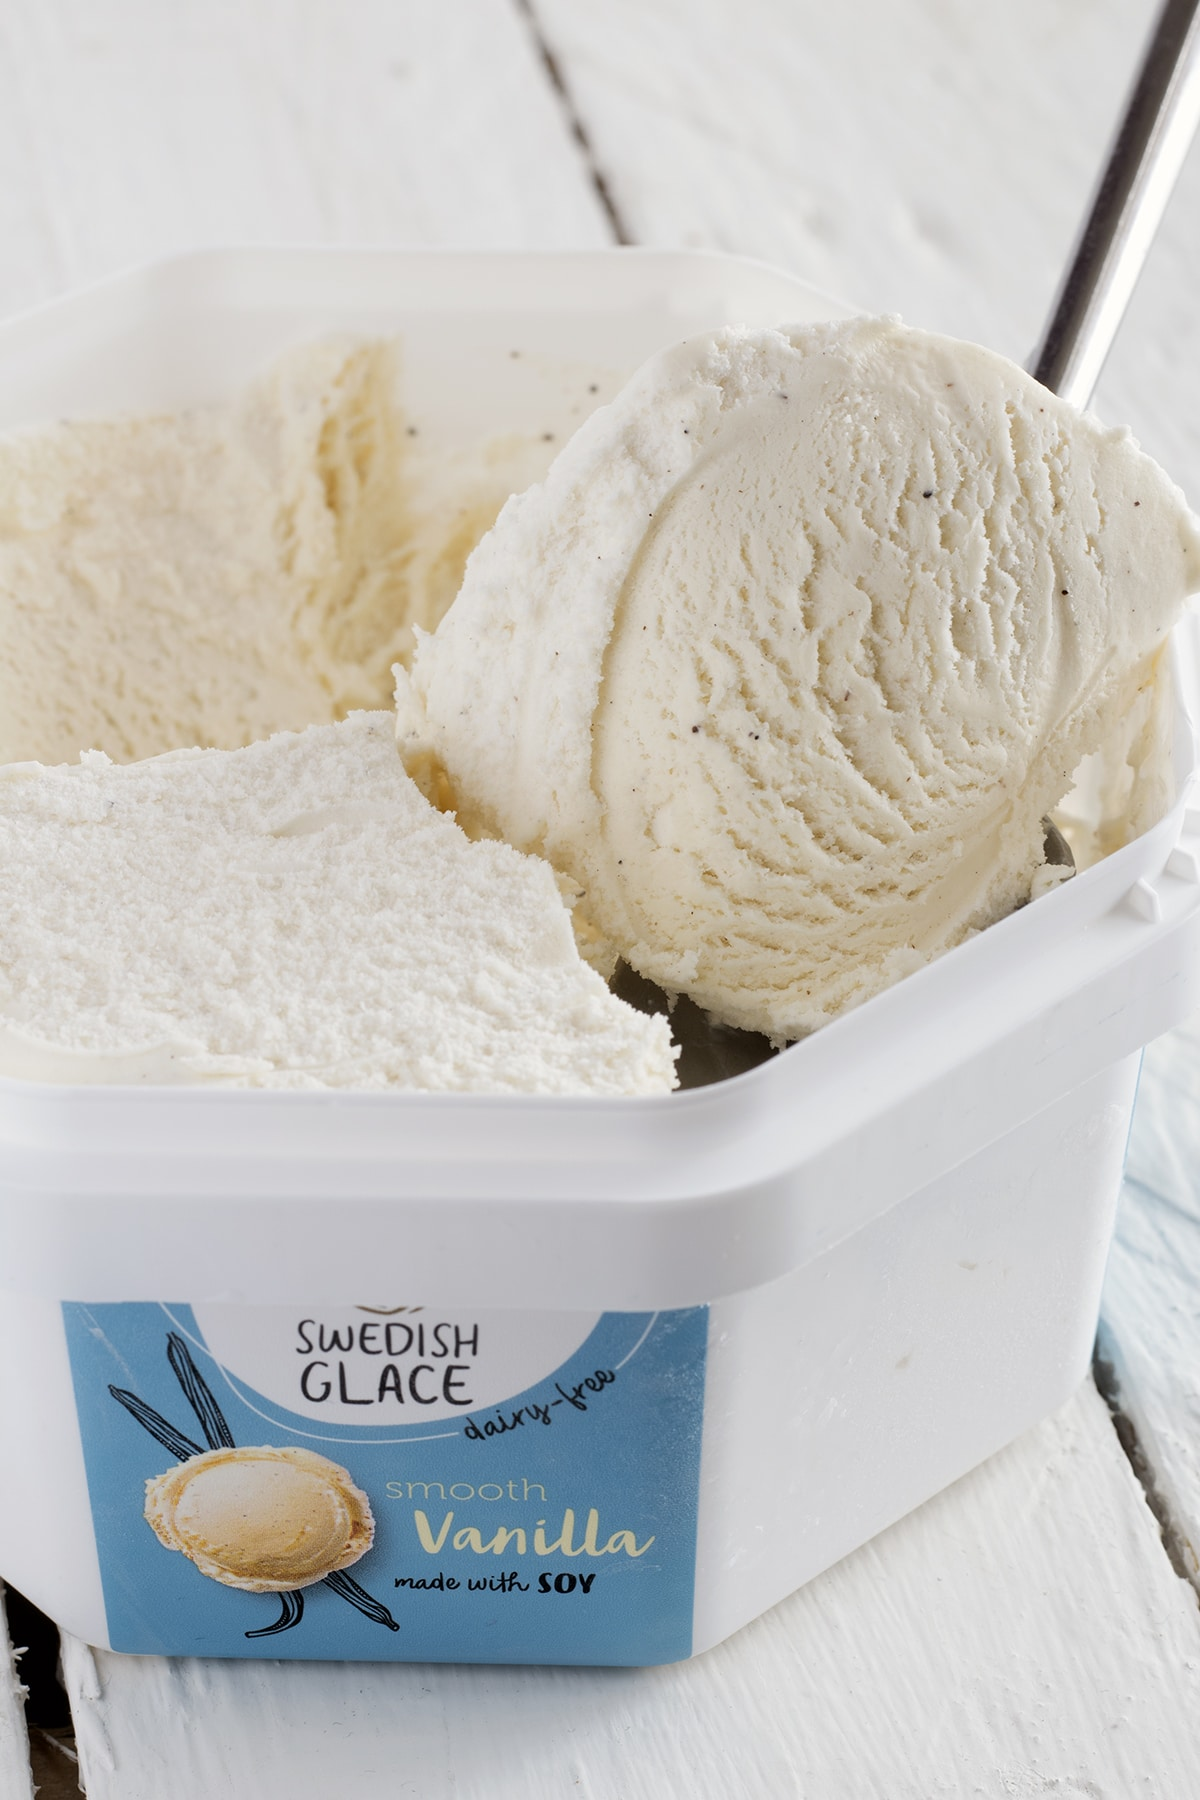 best vegan ice cream swedish glace vanilla